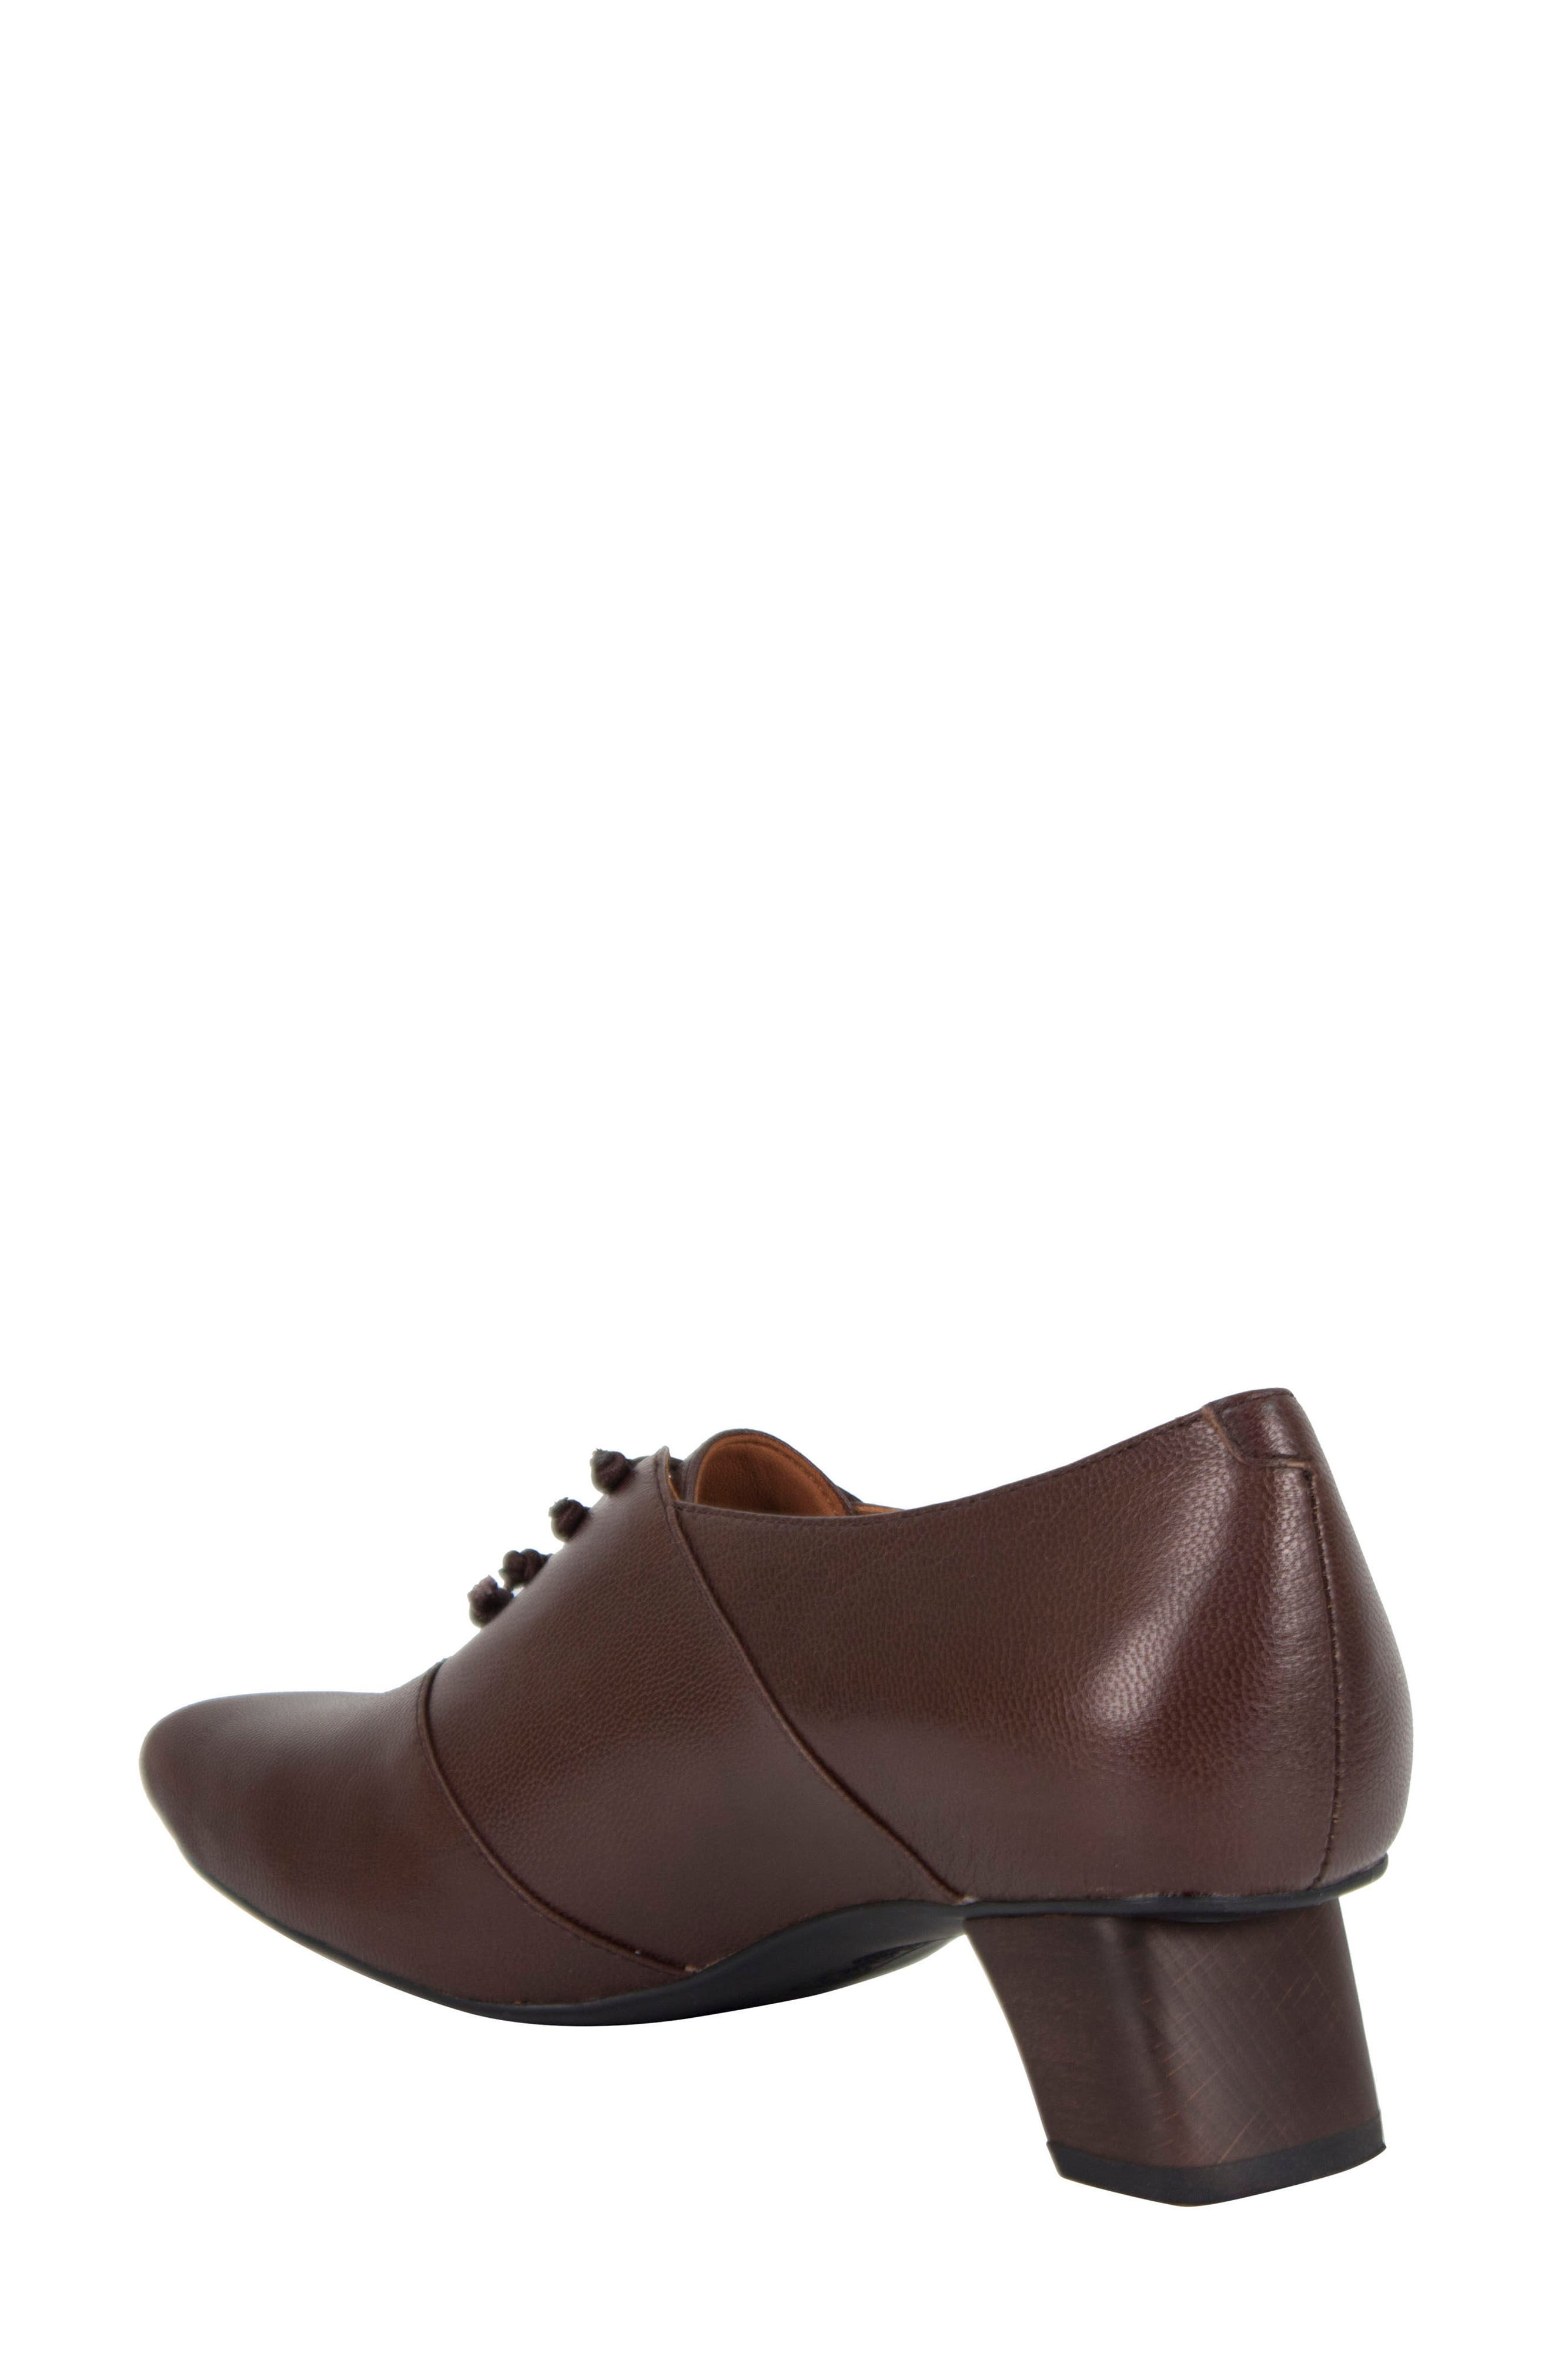 Winifred Lace-Up Bootie,                             Alternate thumbnail 2, color,                             Moro Leather